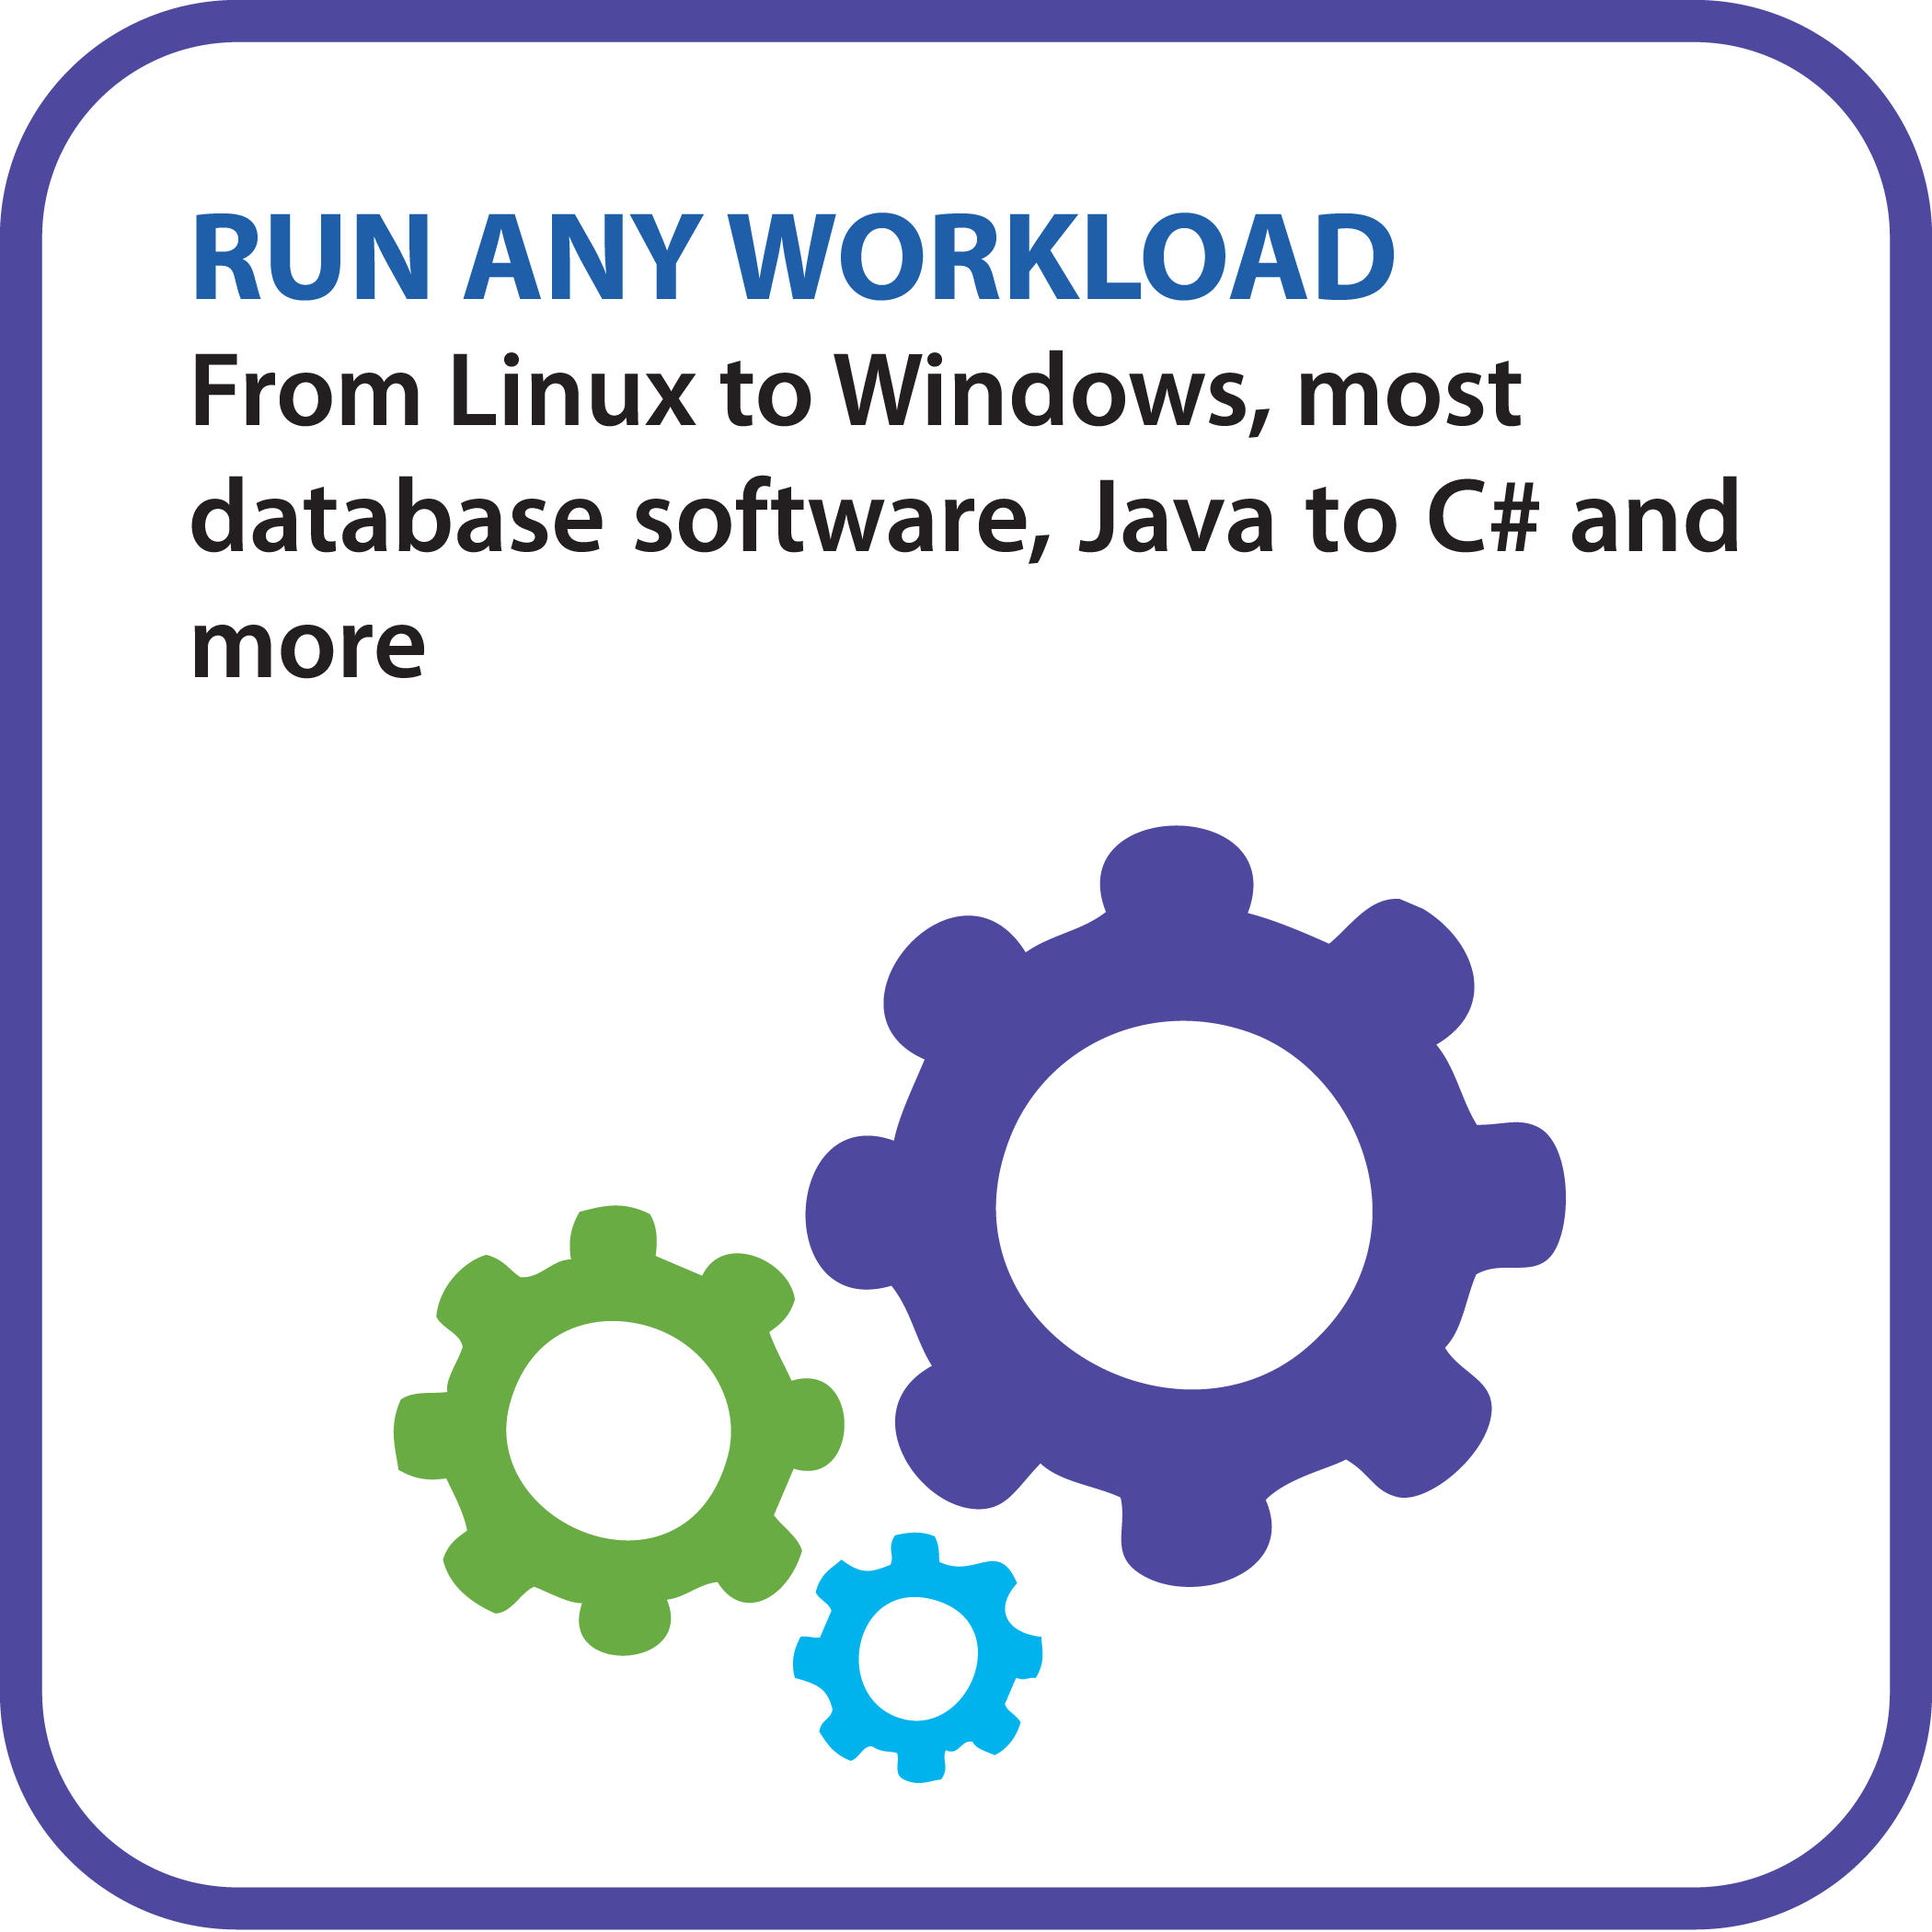 Run any workload